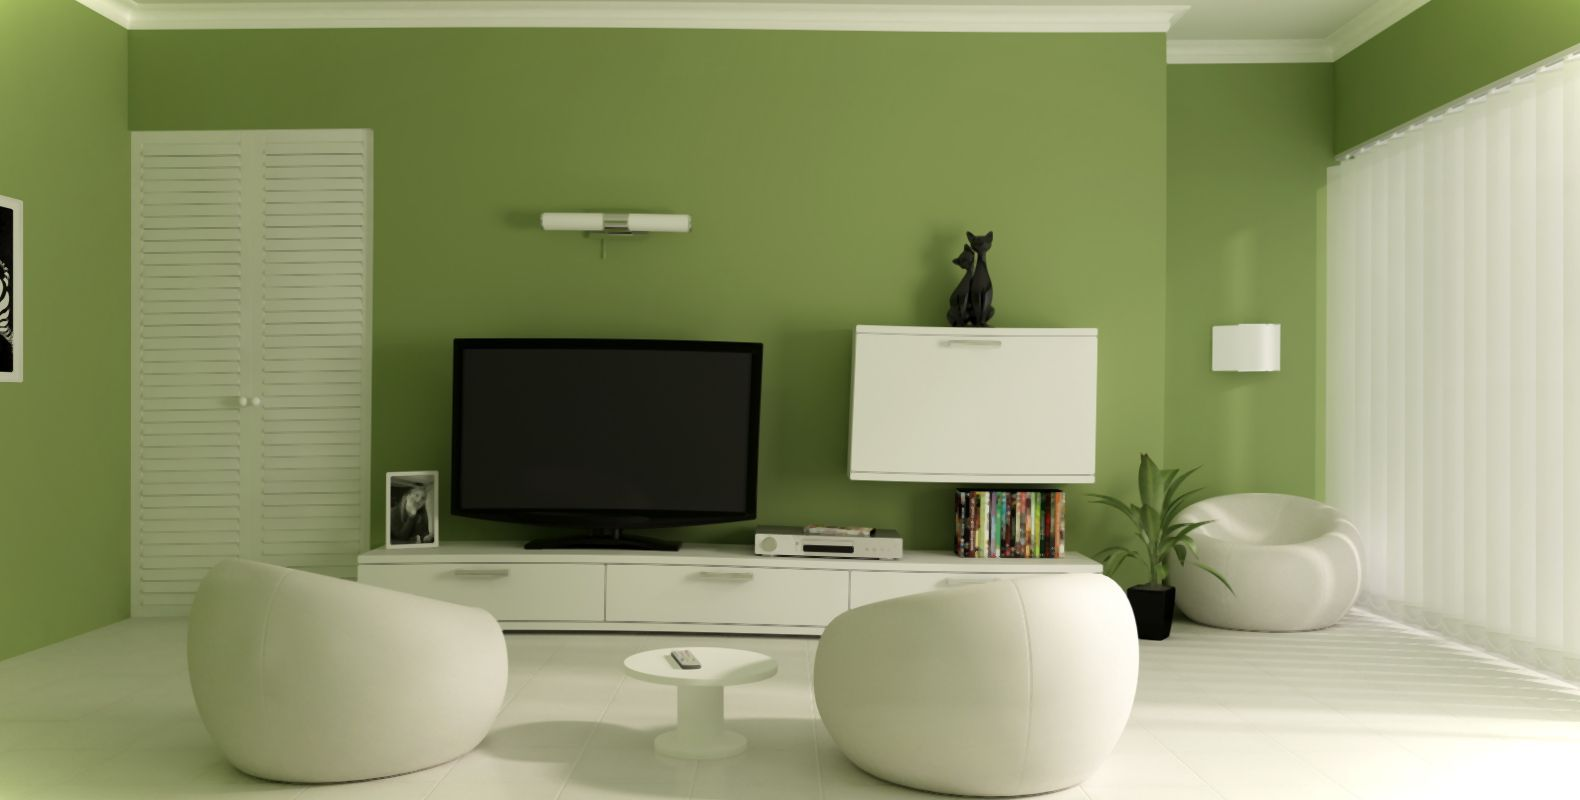 Contemporary Living Room Colors Schemes Decorating Ideas With Green White Color Paint For Roo